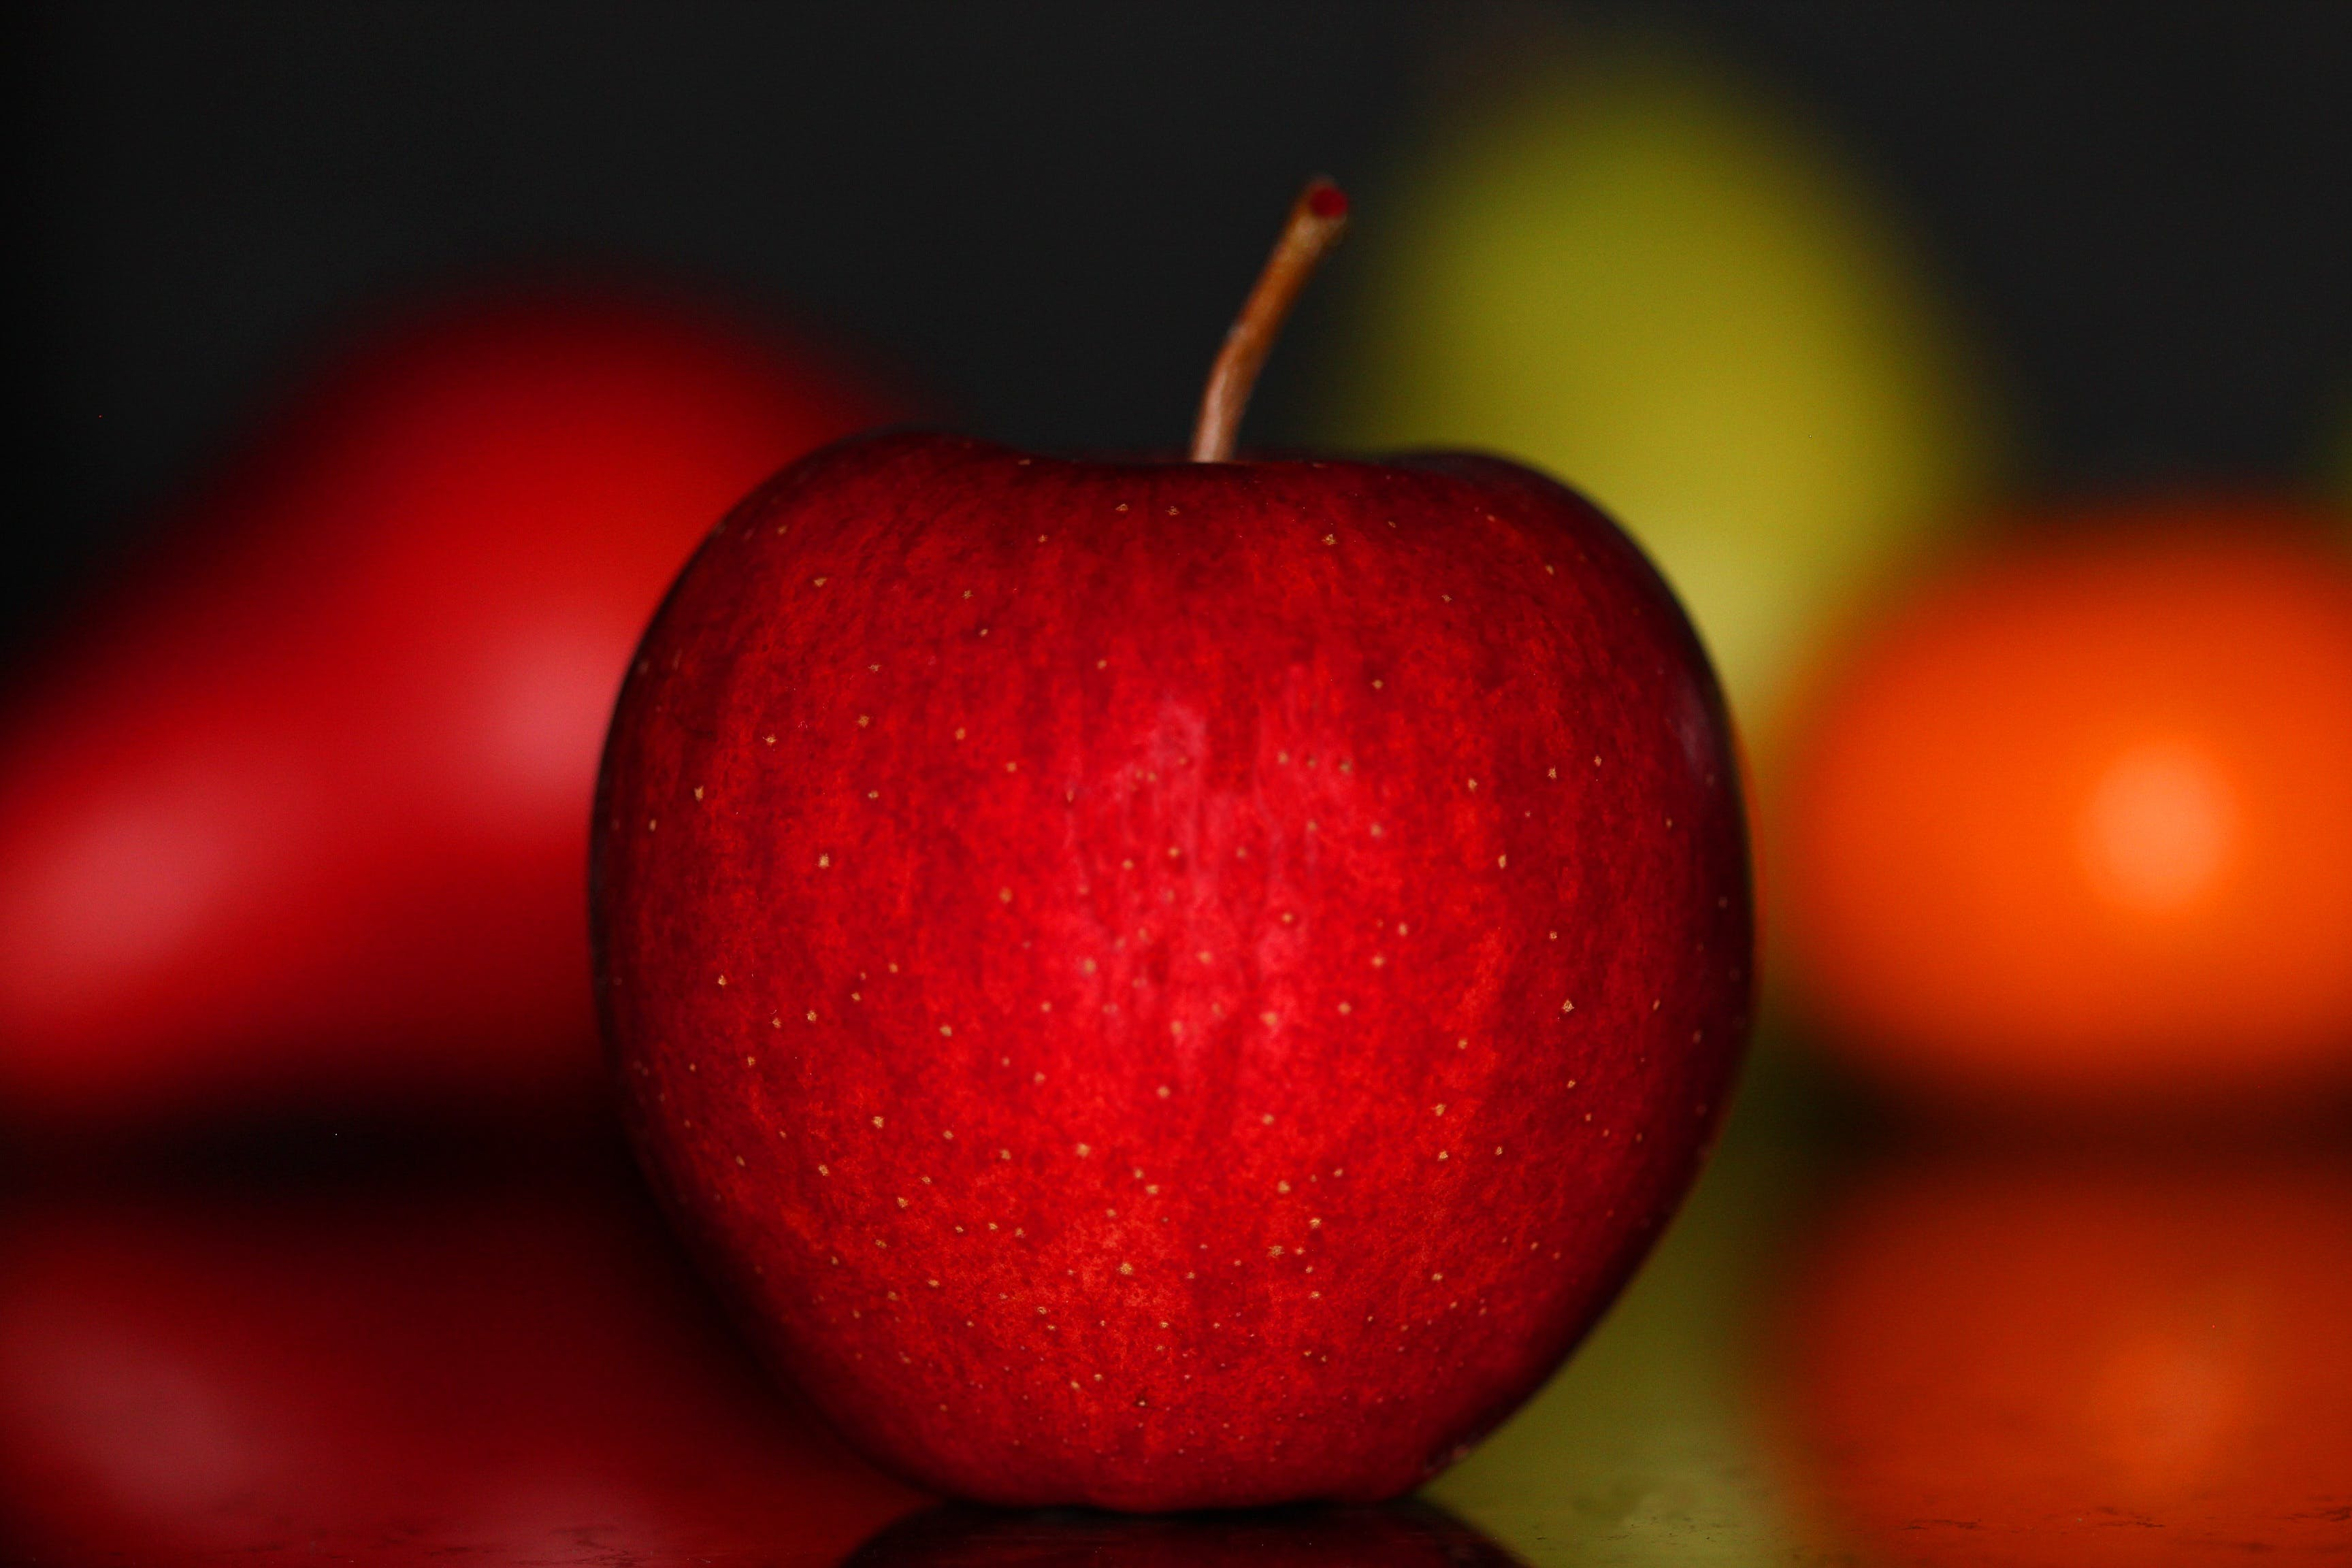 Free stock photo of food, healthy, red, apple